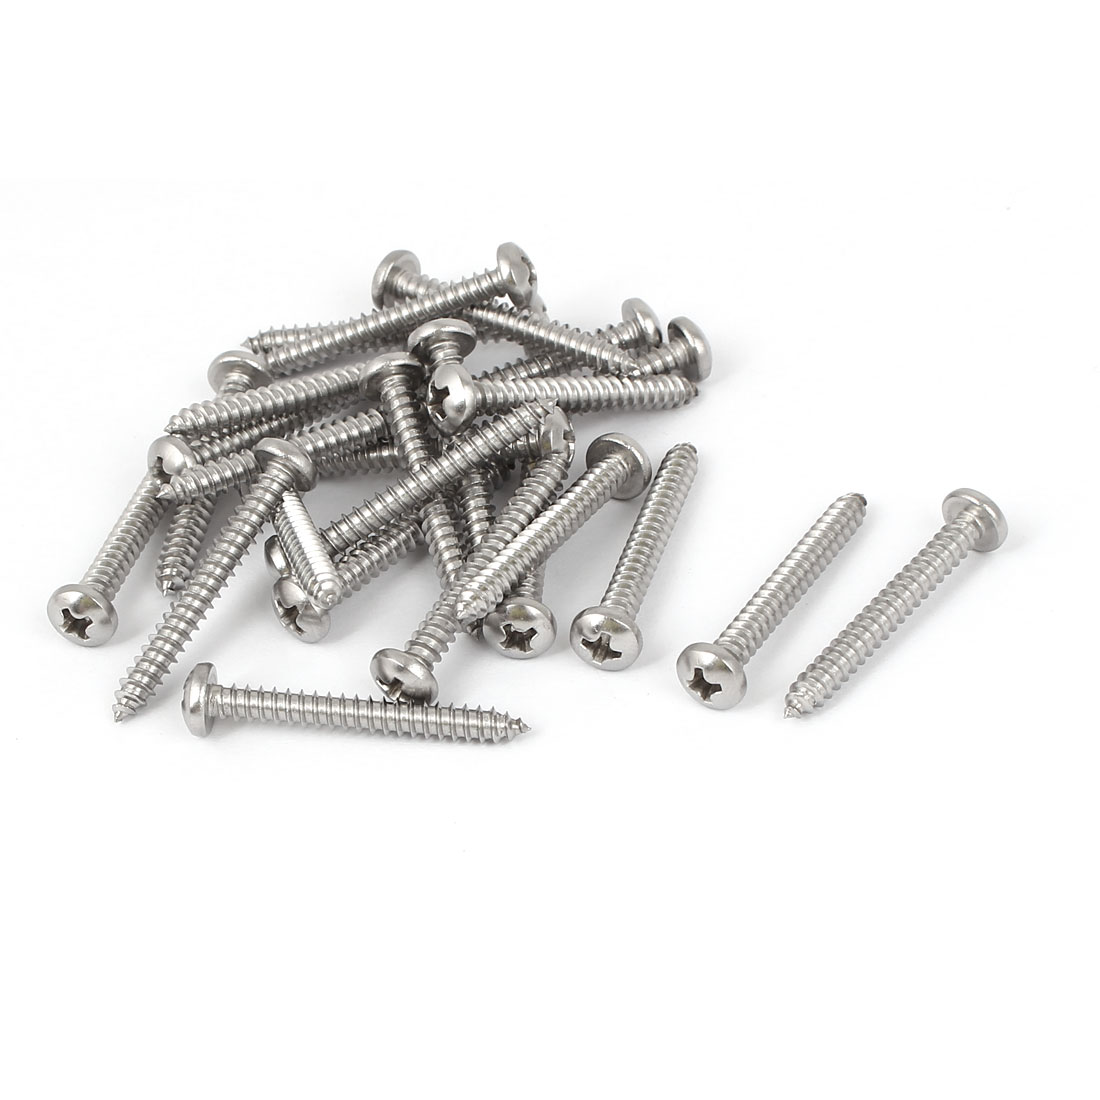 #7 M3.9x32mm Stainless Steel Phillips Round Pan Head Self Tapping Screws 25pcs